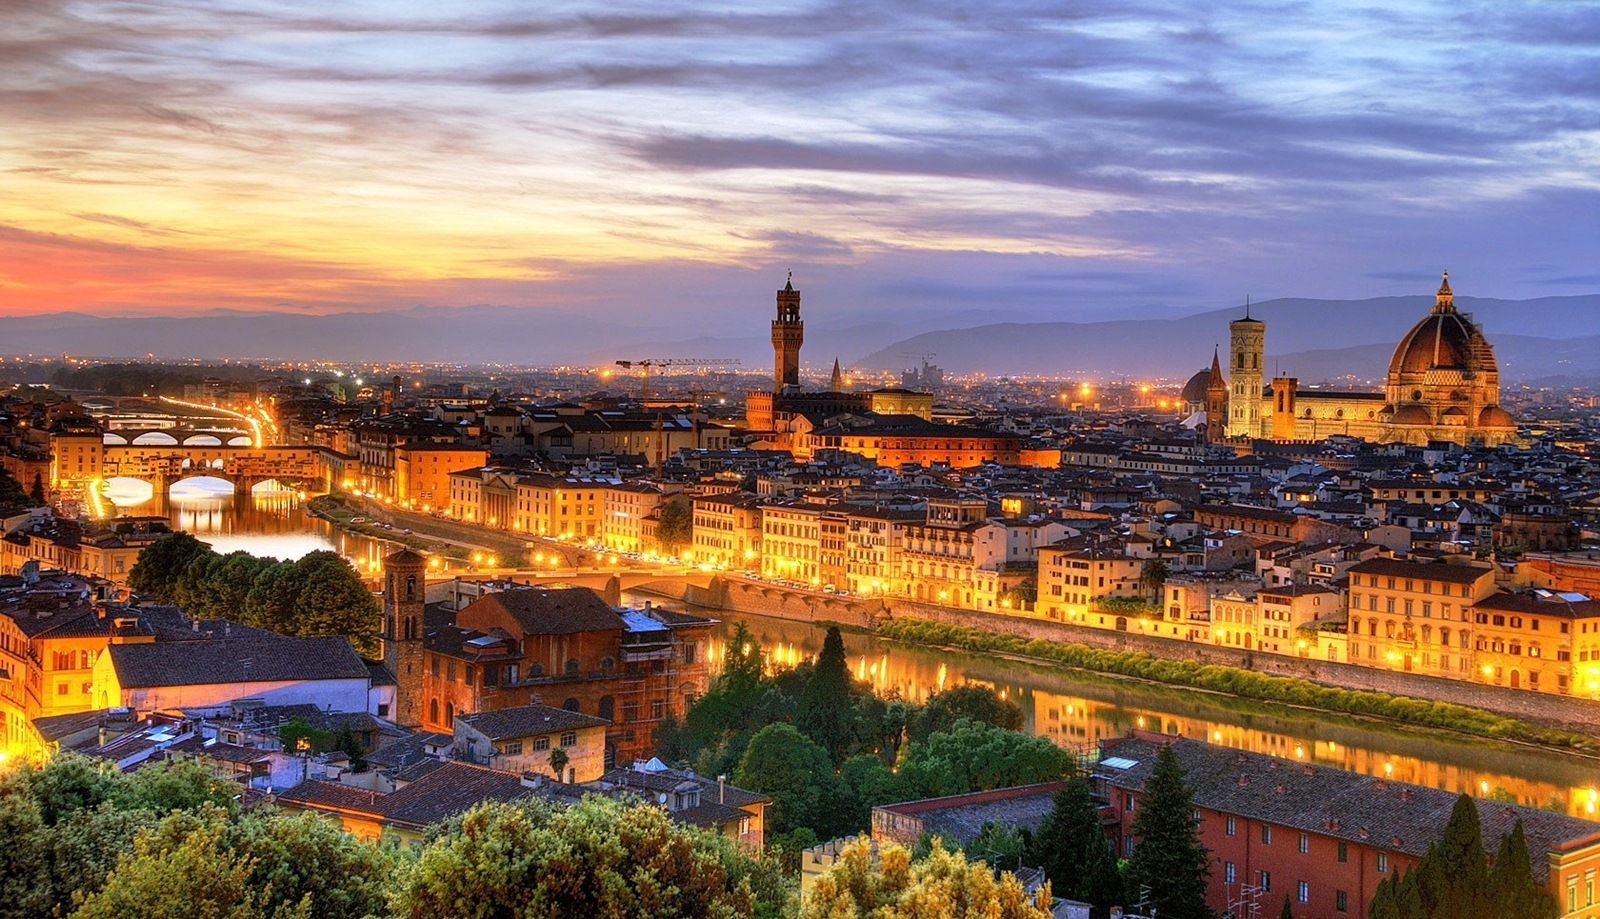 Florence, the city of the lily, gave birth to the Renaissance